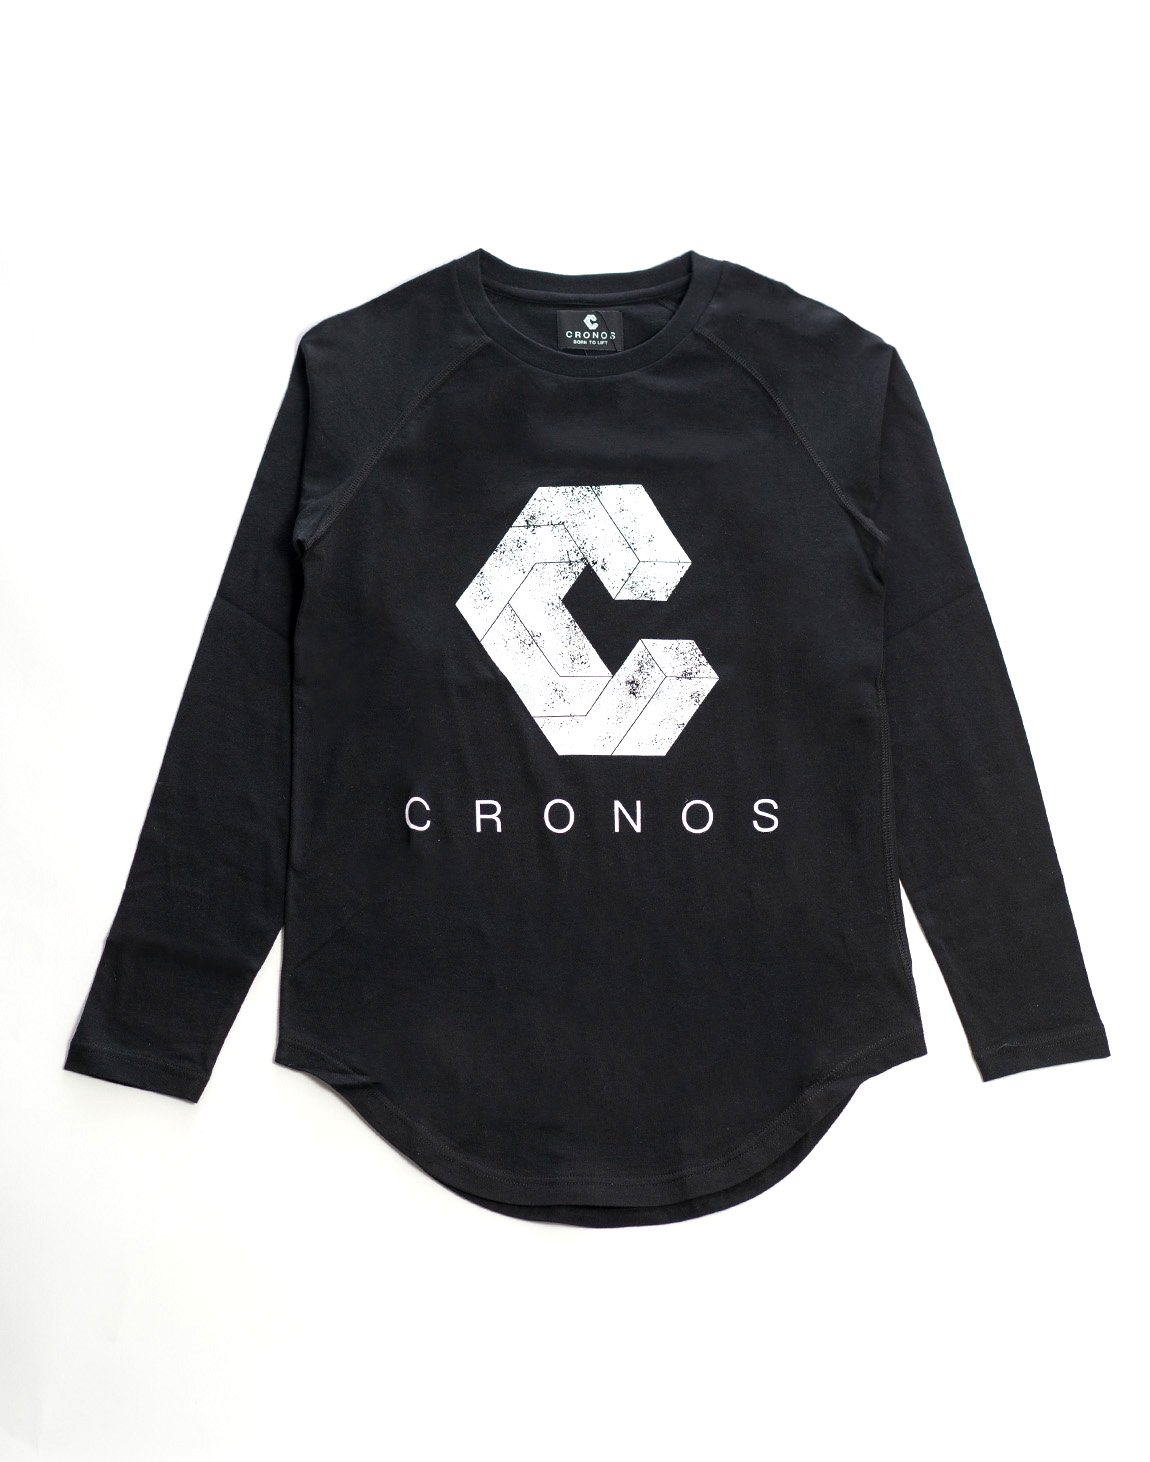 <img class='new_mark_img1' src='https://img.shop-pro.jp/img/new/icons1.gif' style='border:none;display:inline;margin:0px;padding:0px;width:auto;' />CRONOS CLASSIC LOG LONGSLEEVE  BLACK